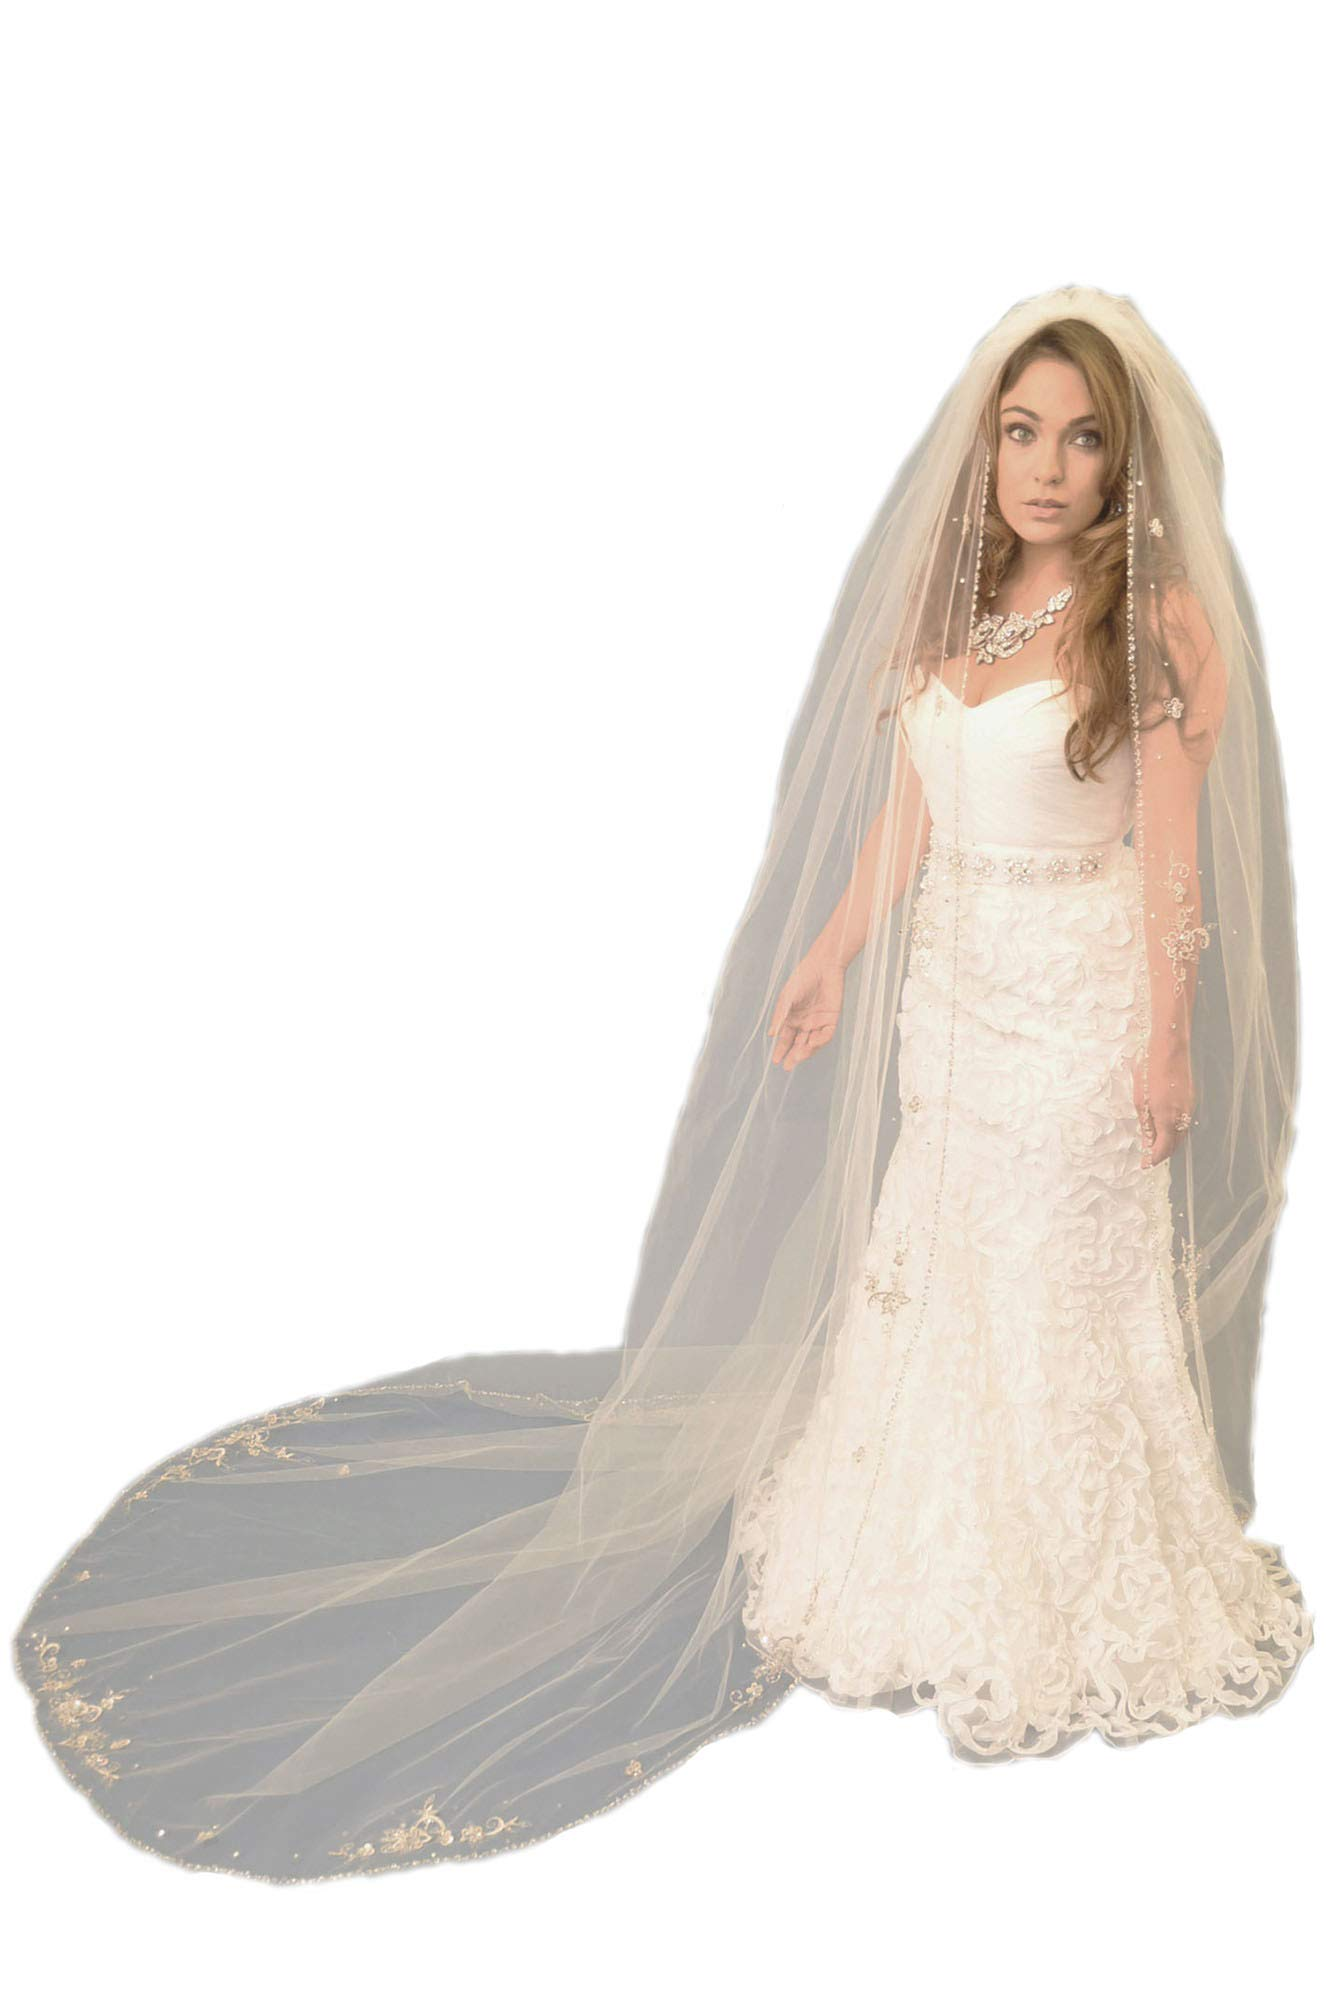 Passat Ivory 2M Chapel Veil with Metallic Stitched Edge and Floral Embroidery Design with Pearls Rhinestones VL-1015